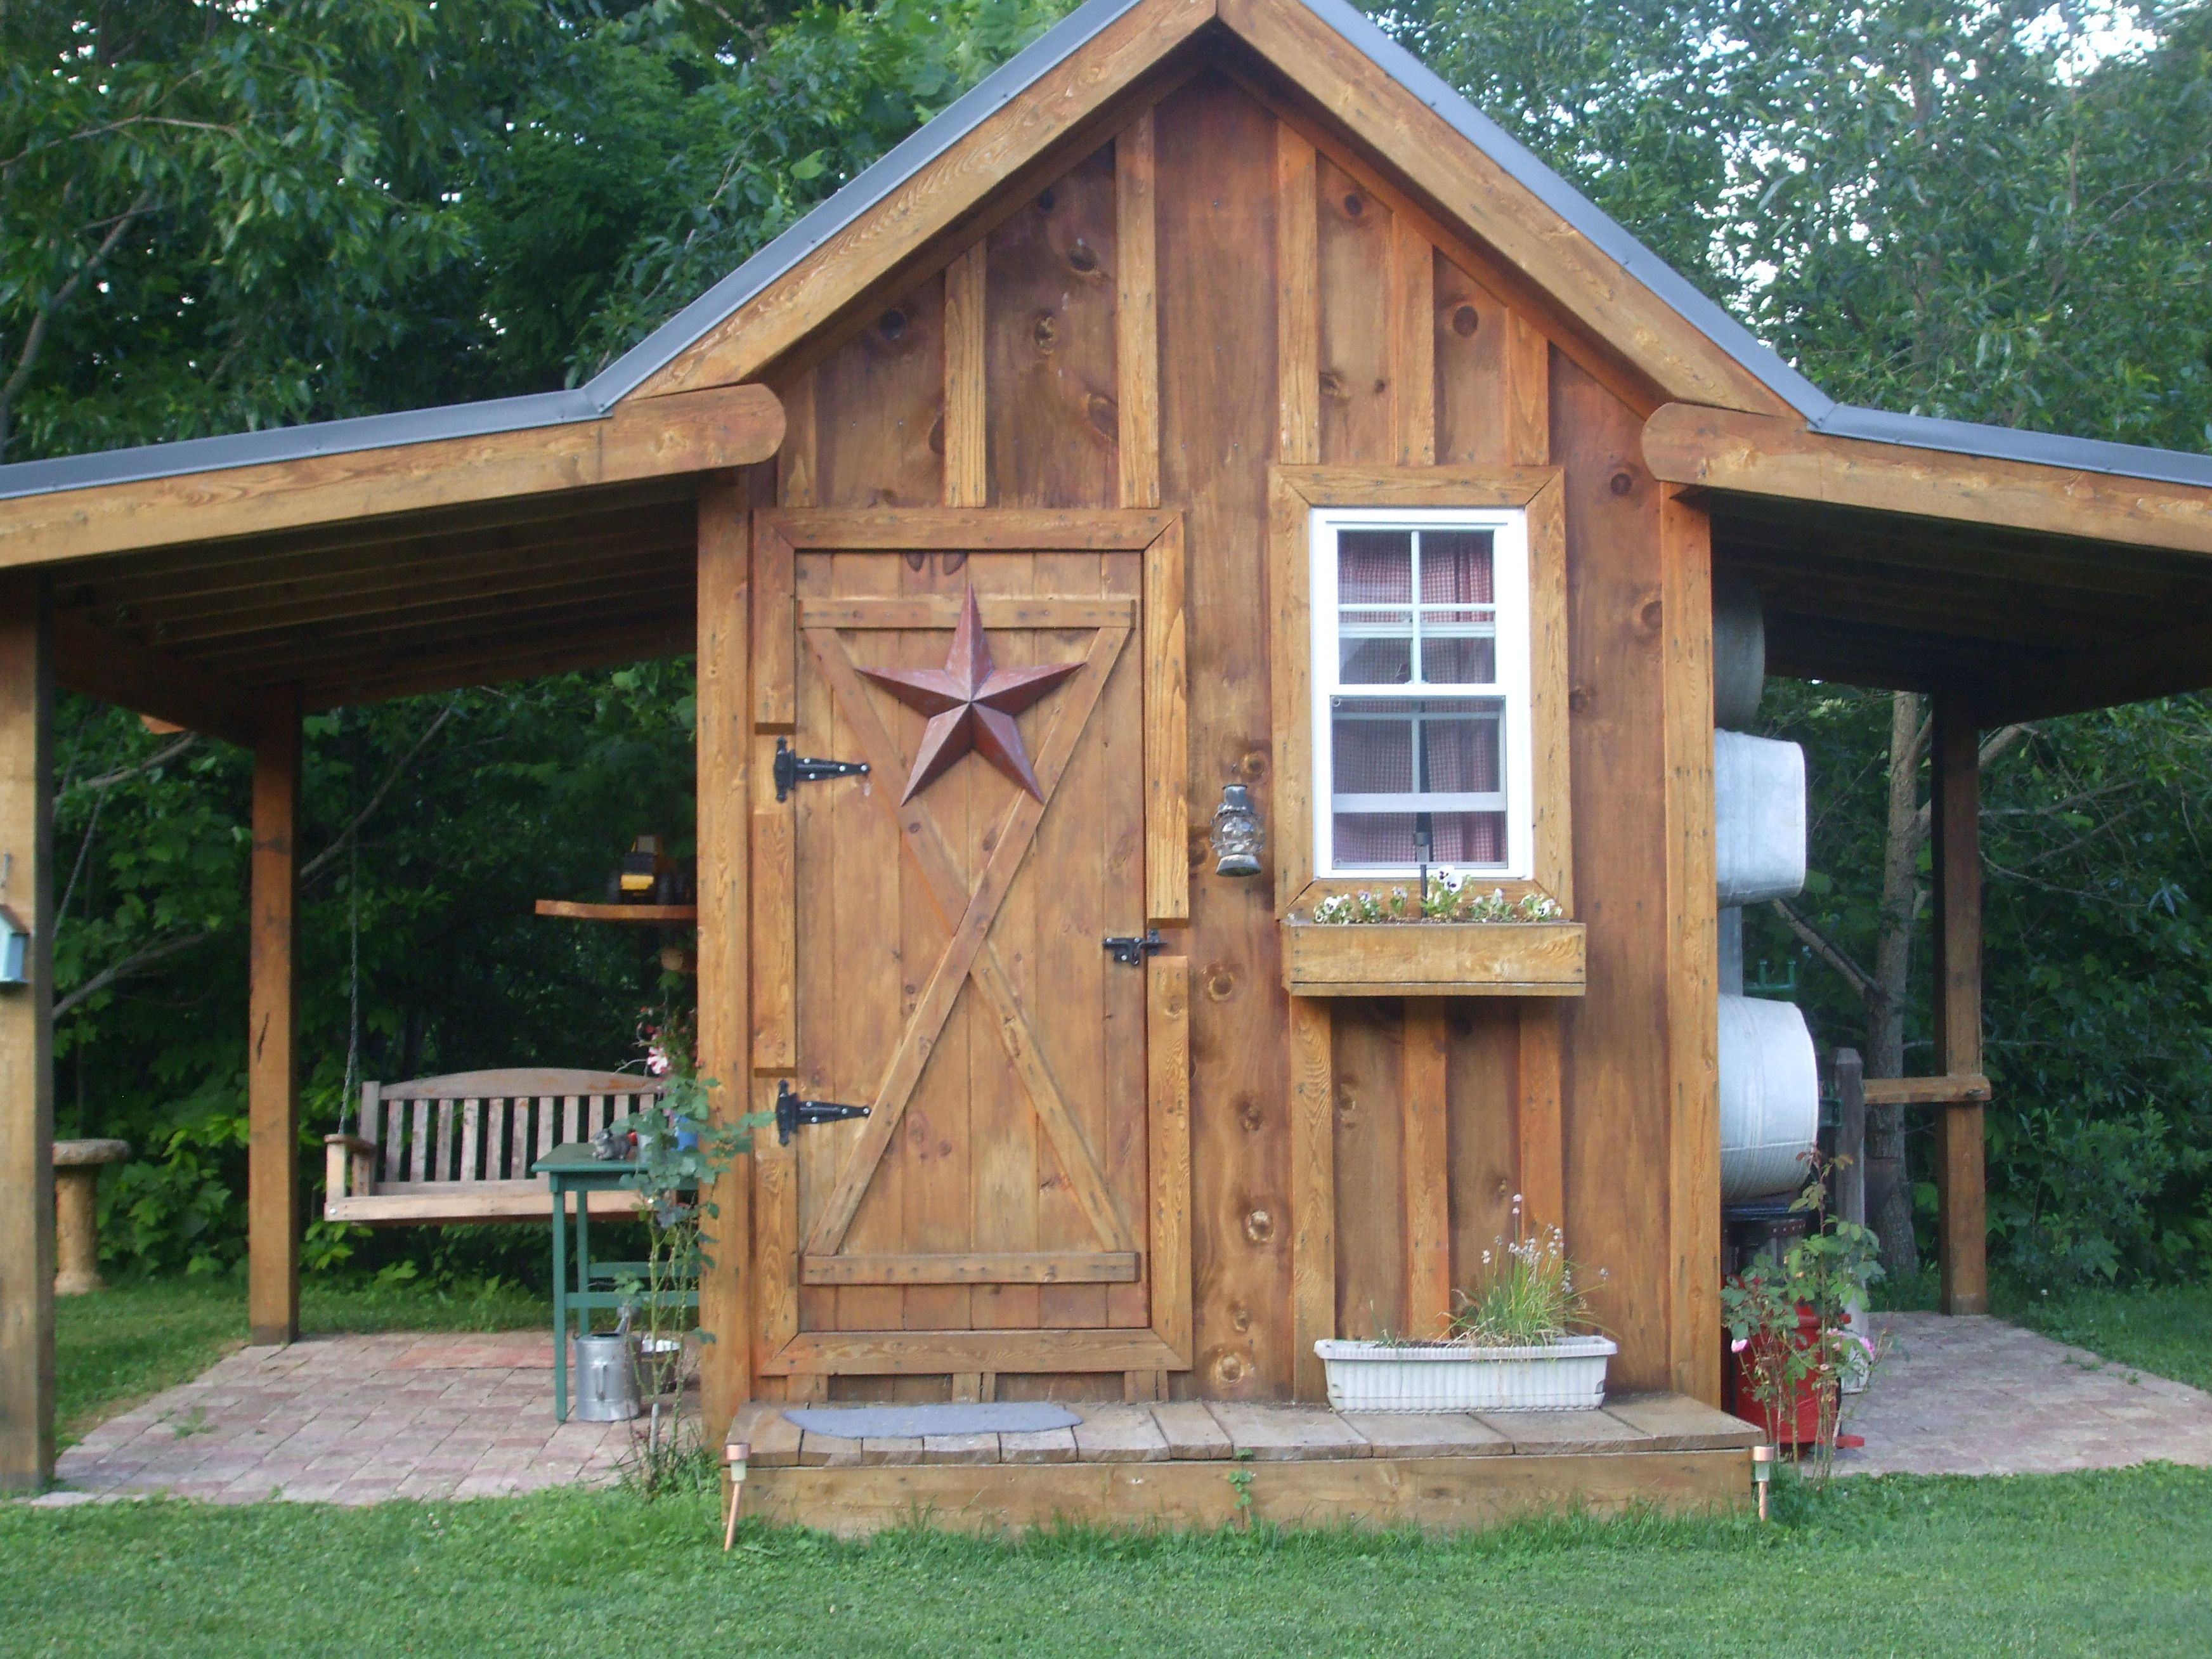 ryan shed plans 12 000 shed plans and designs for easy shed